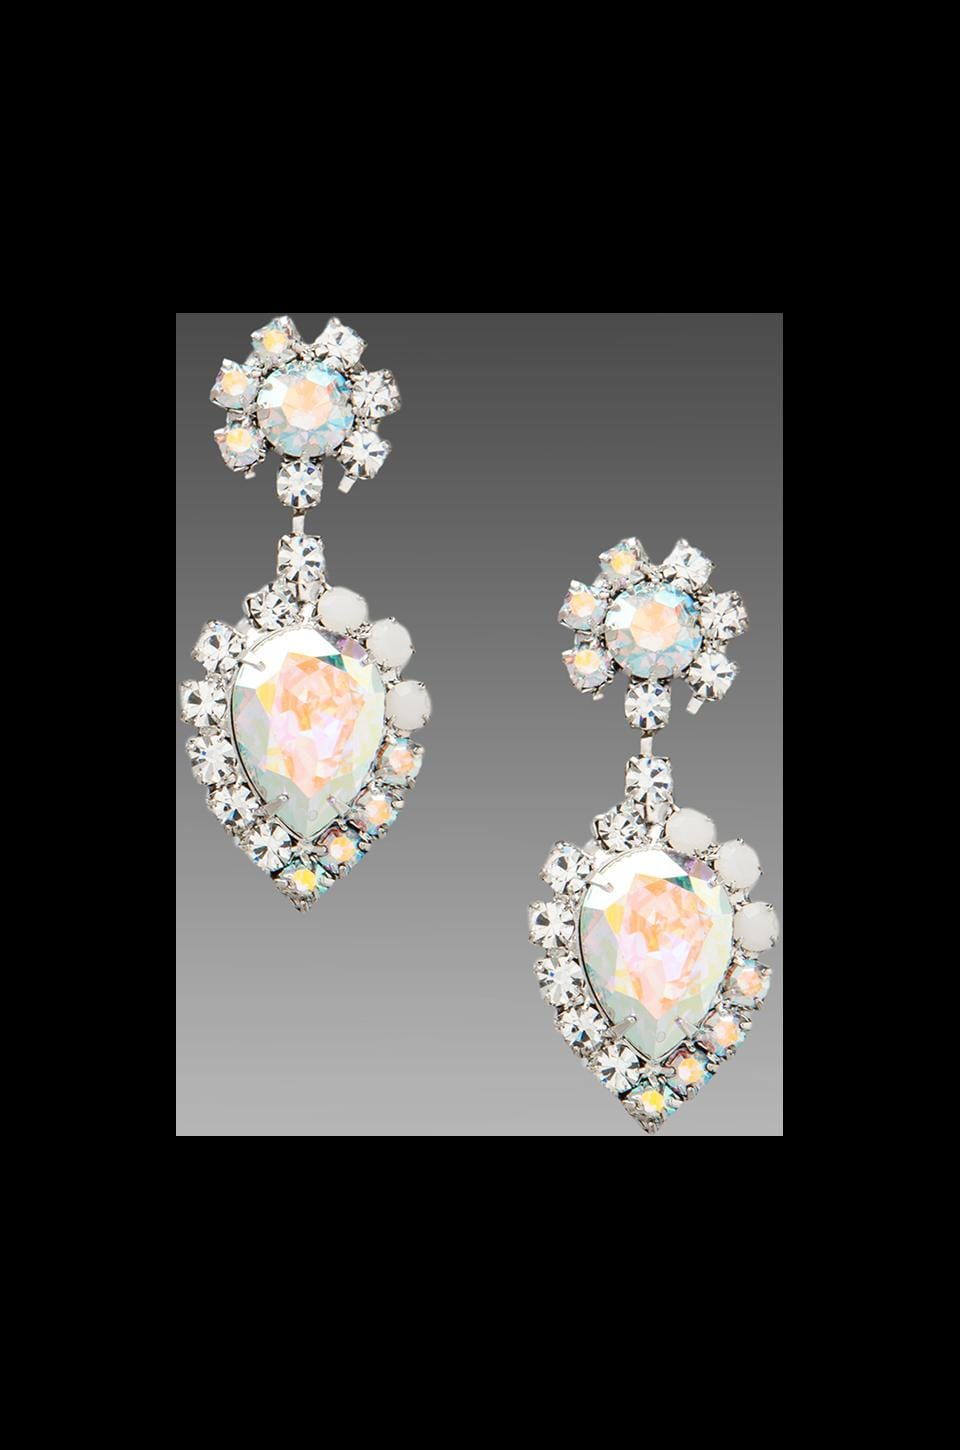 DANNIJO Mirabella Earrings in Clear/Crystal